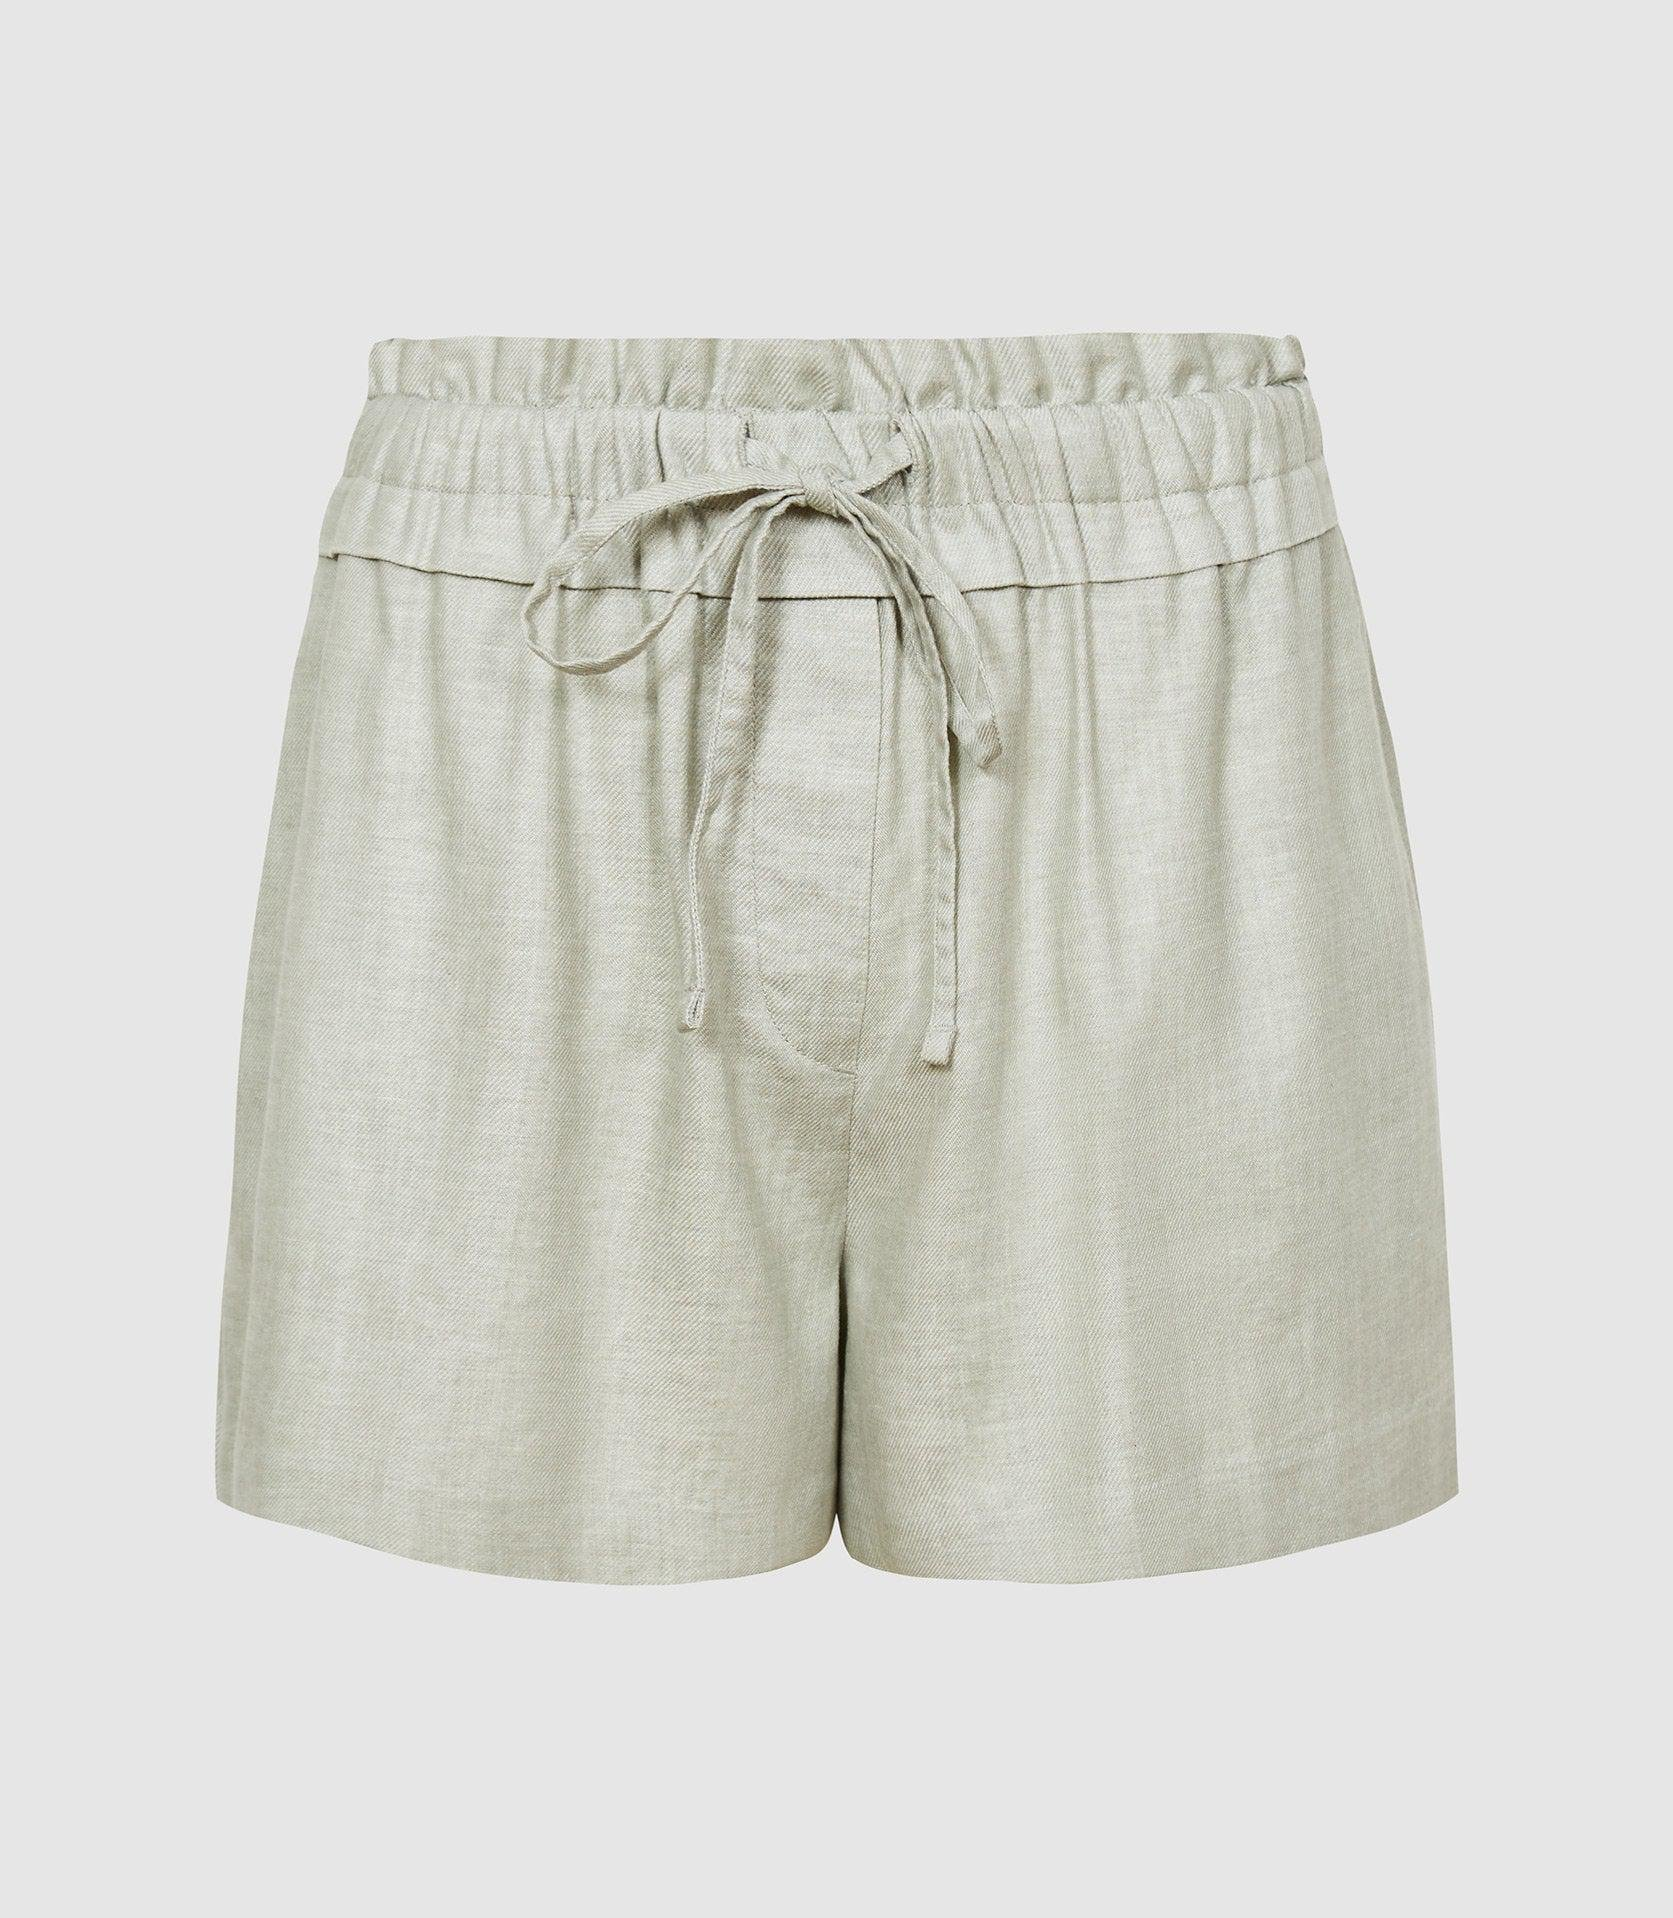 LACEY - LINEN BLEND DRAWCORD SHORTS 6